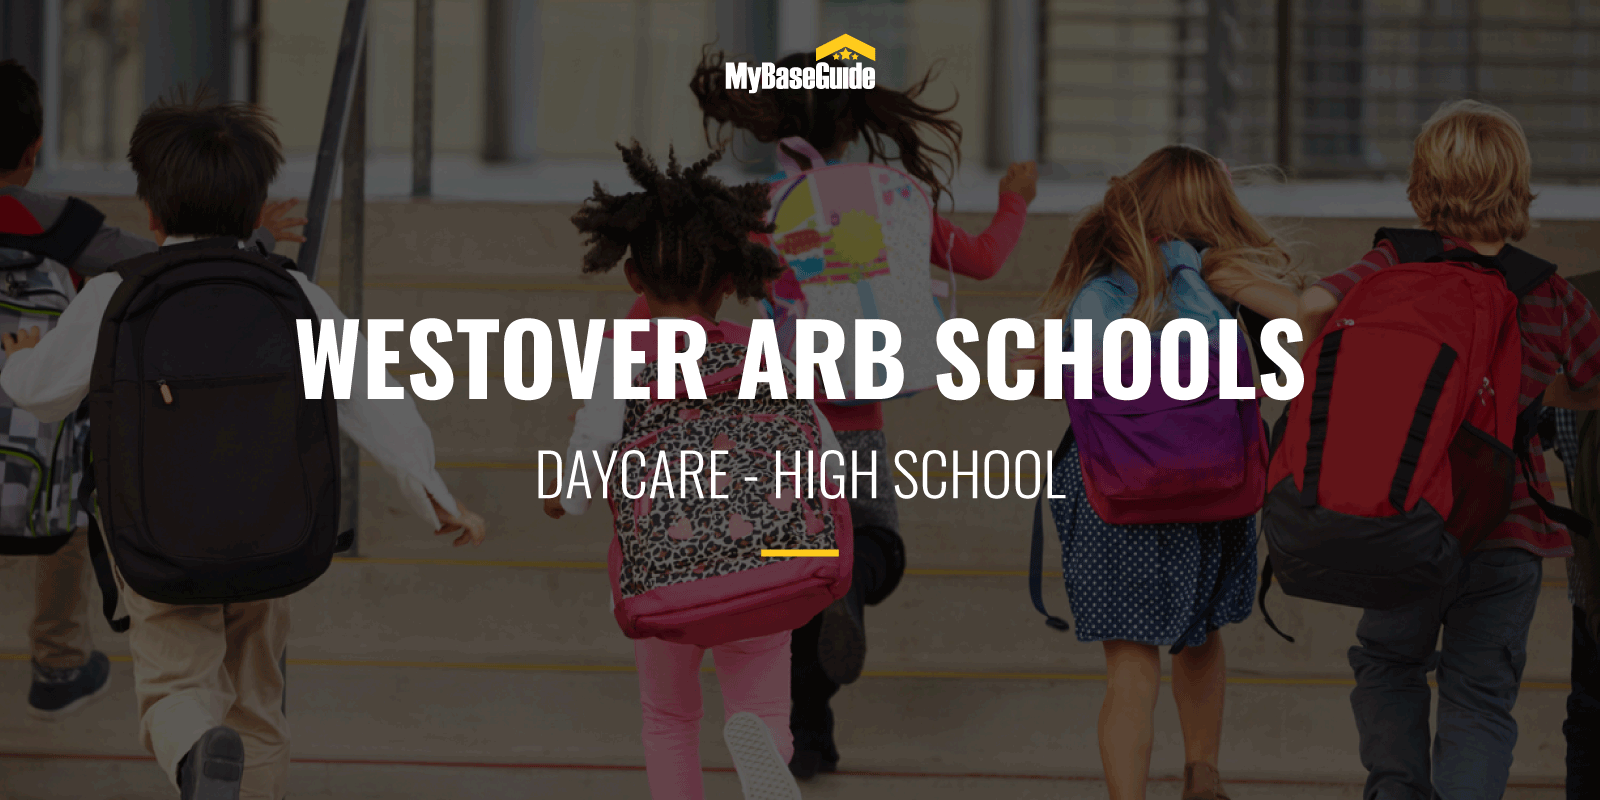 Westover ARB Schools: Daycare - High School